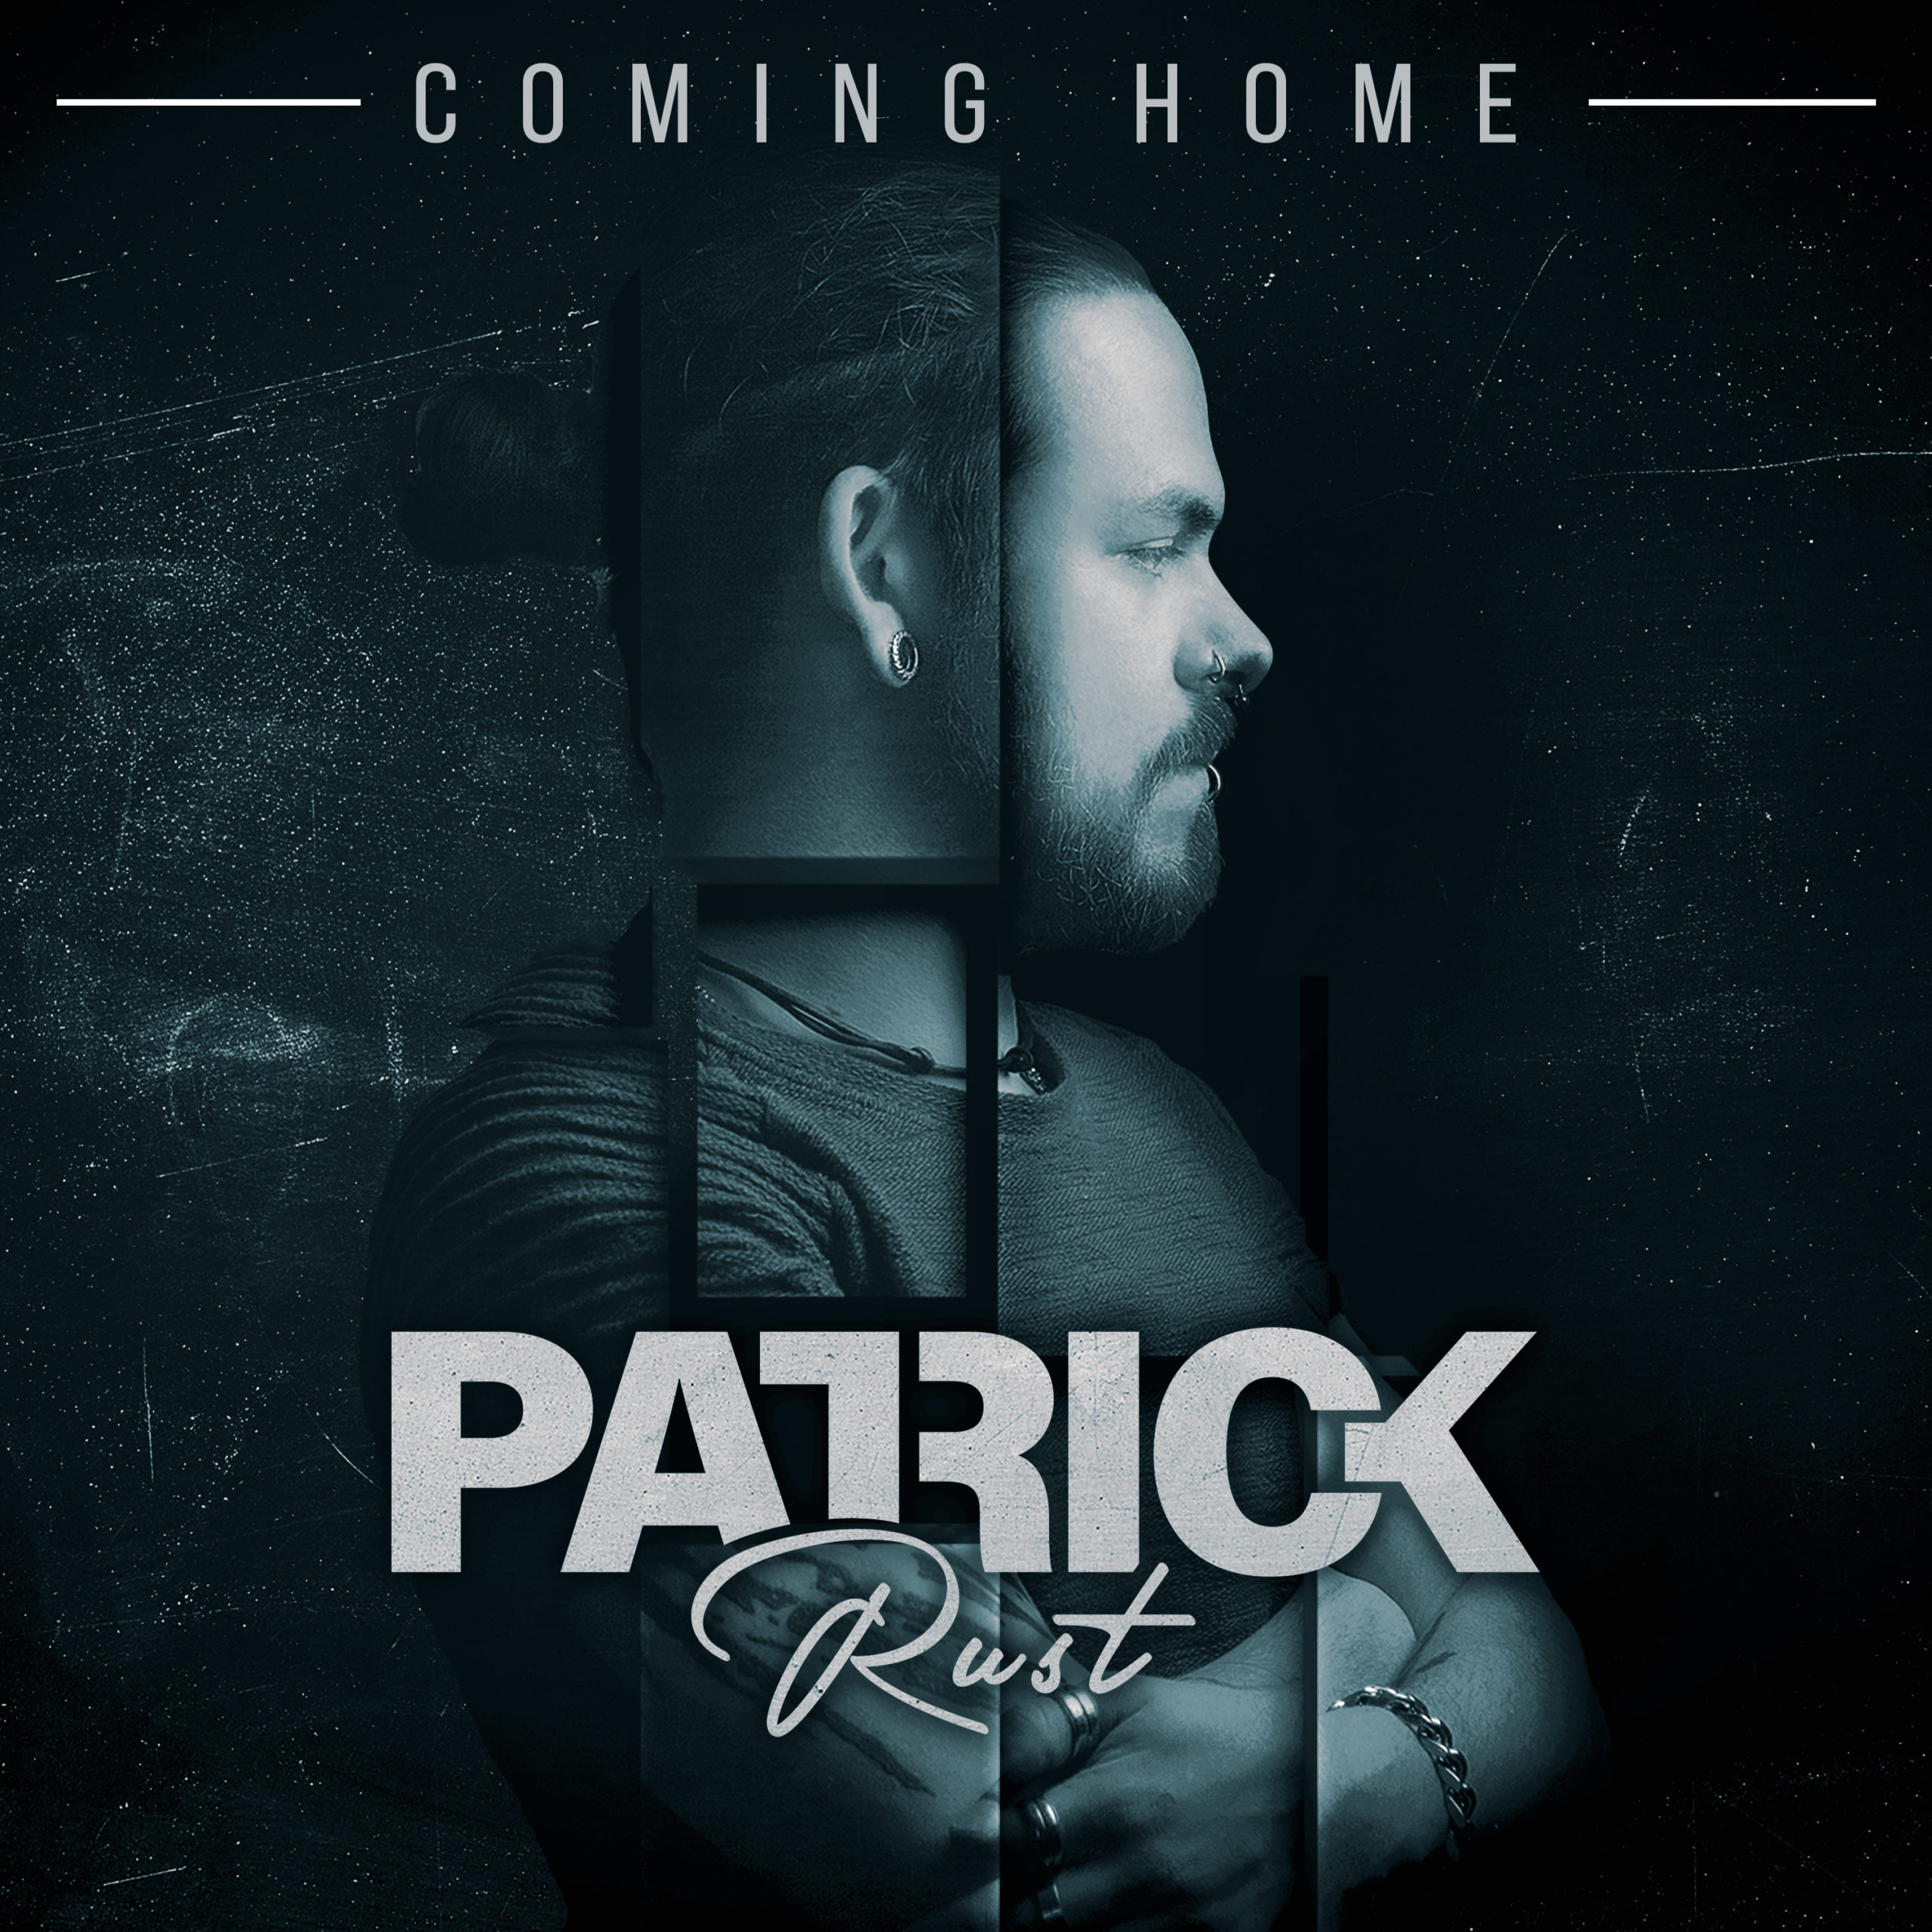 Patrick Rust - Coming Home